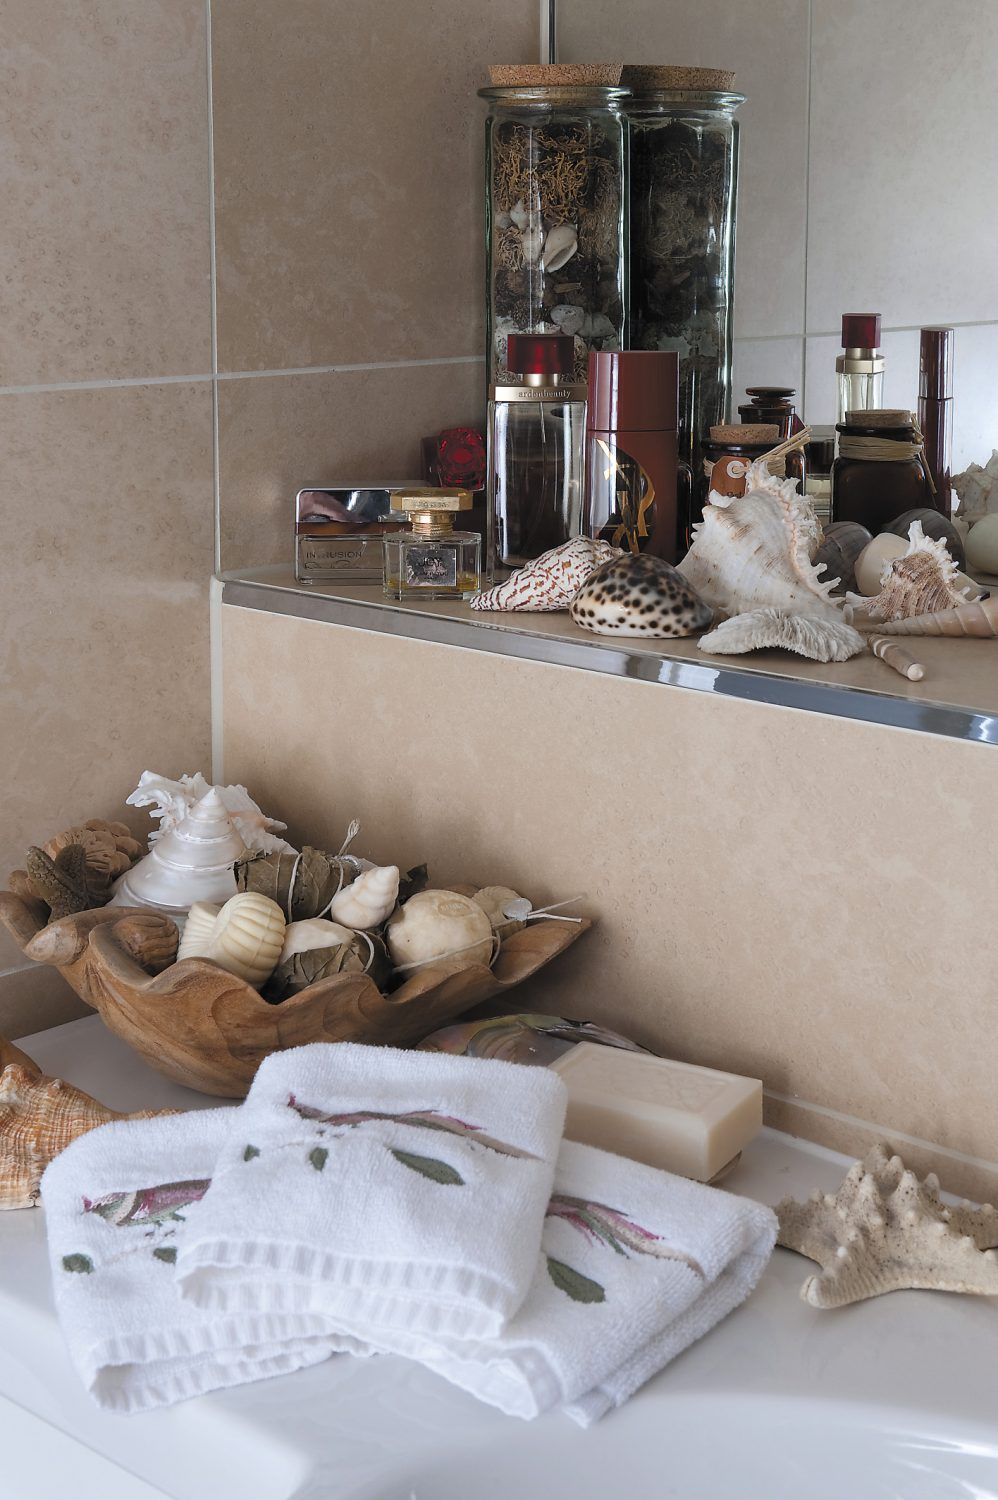 Shells on display in the cloakroom